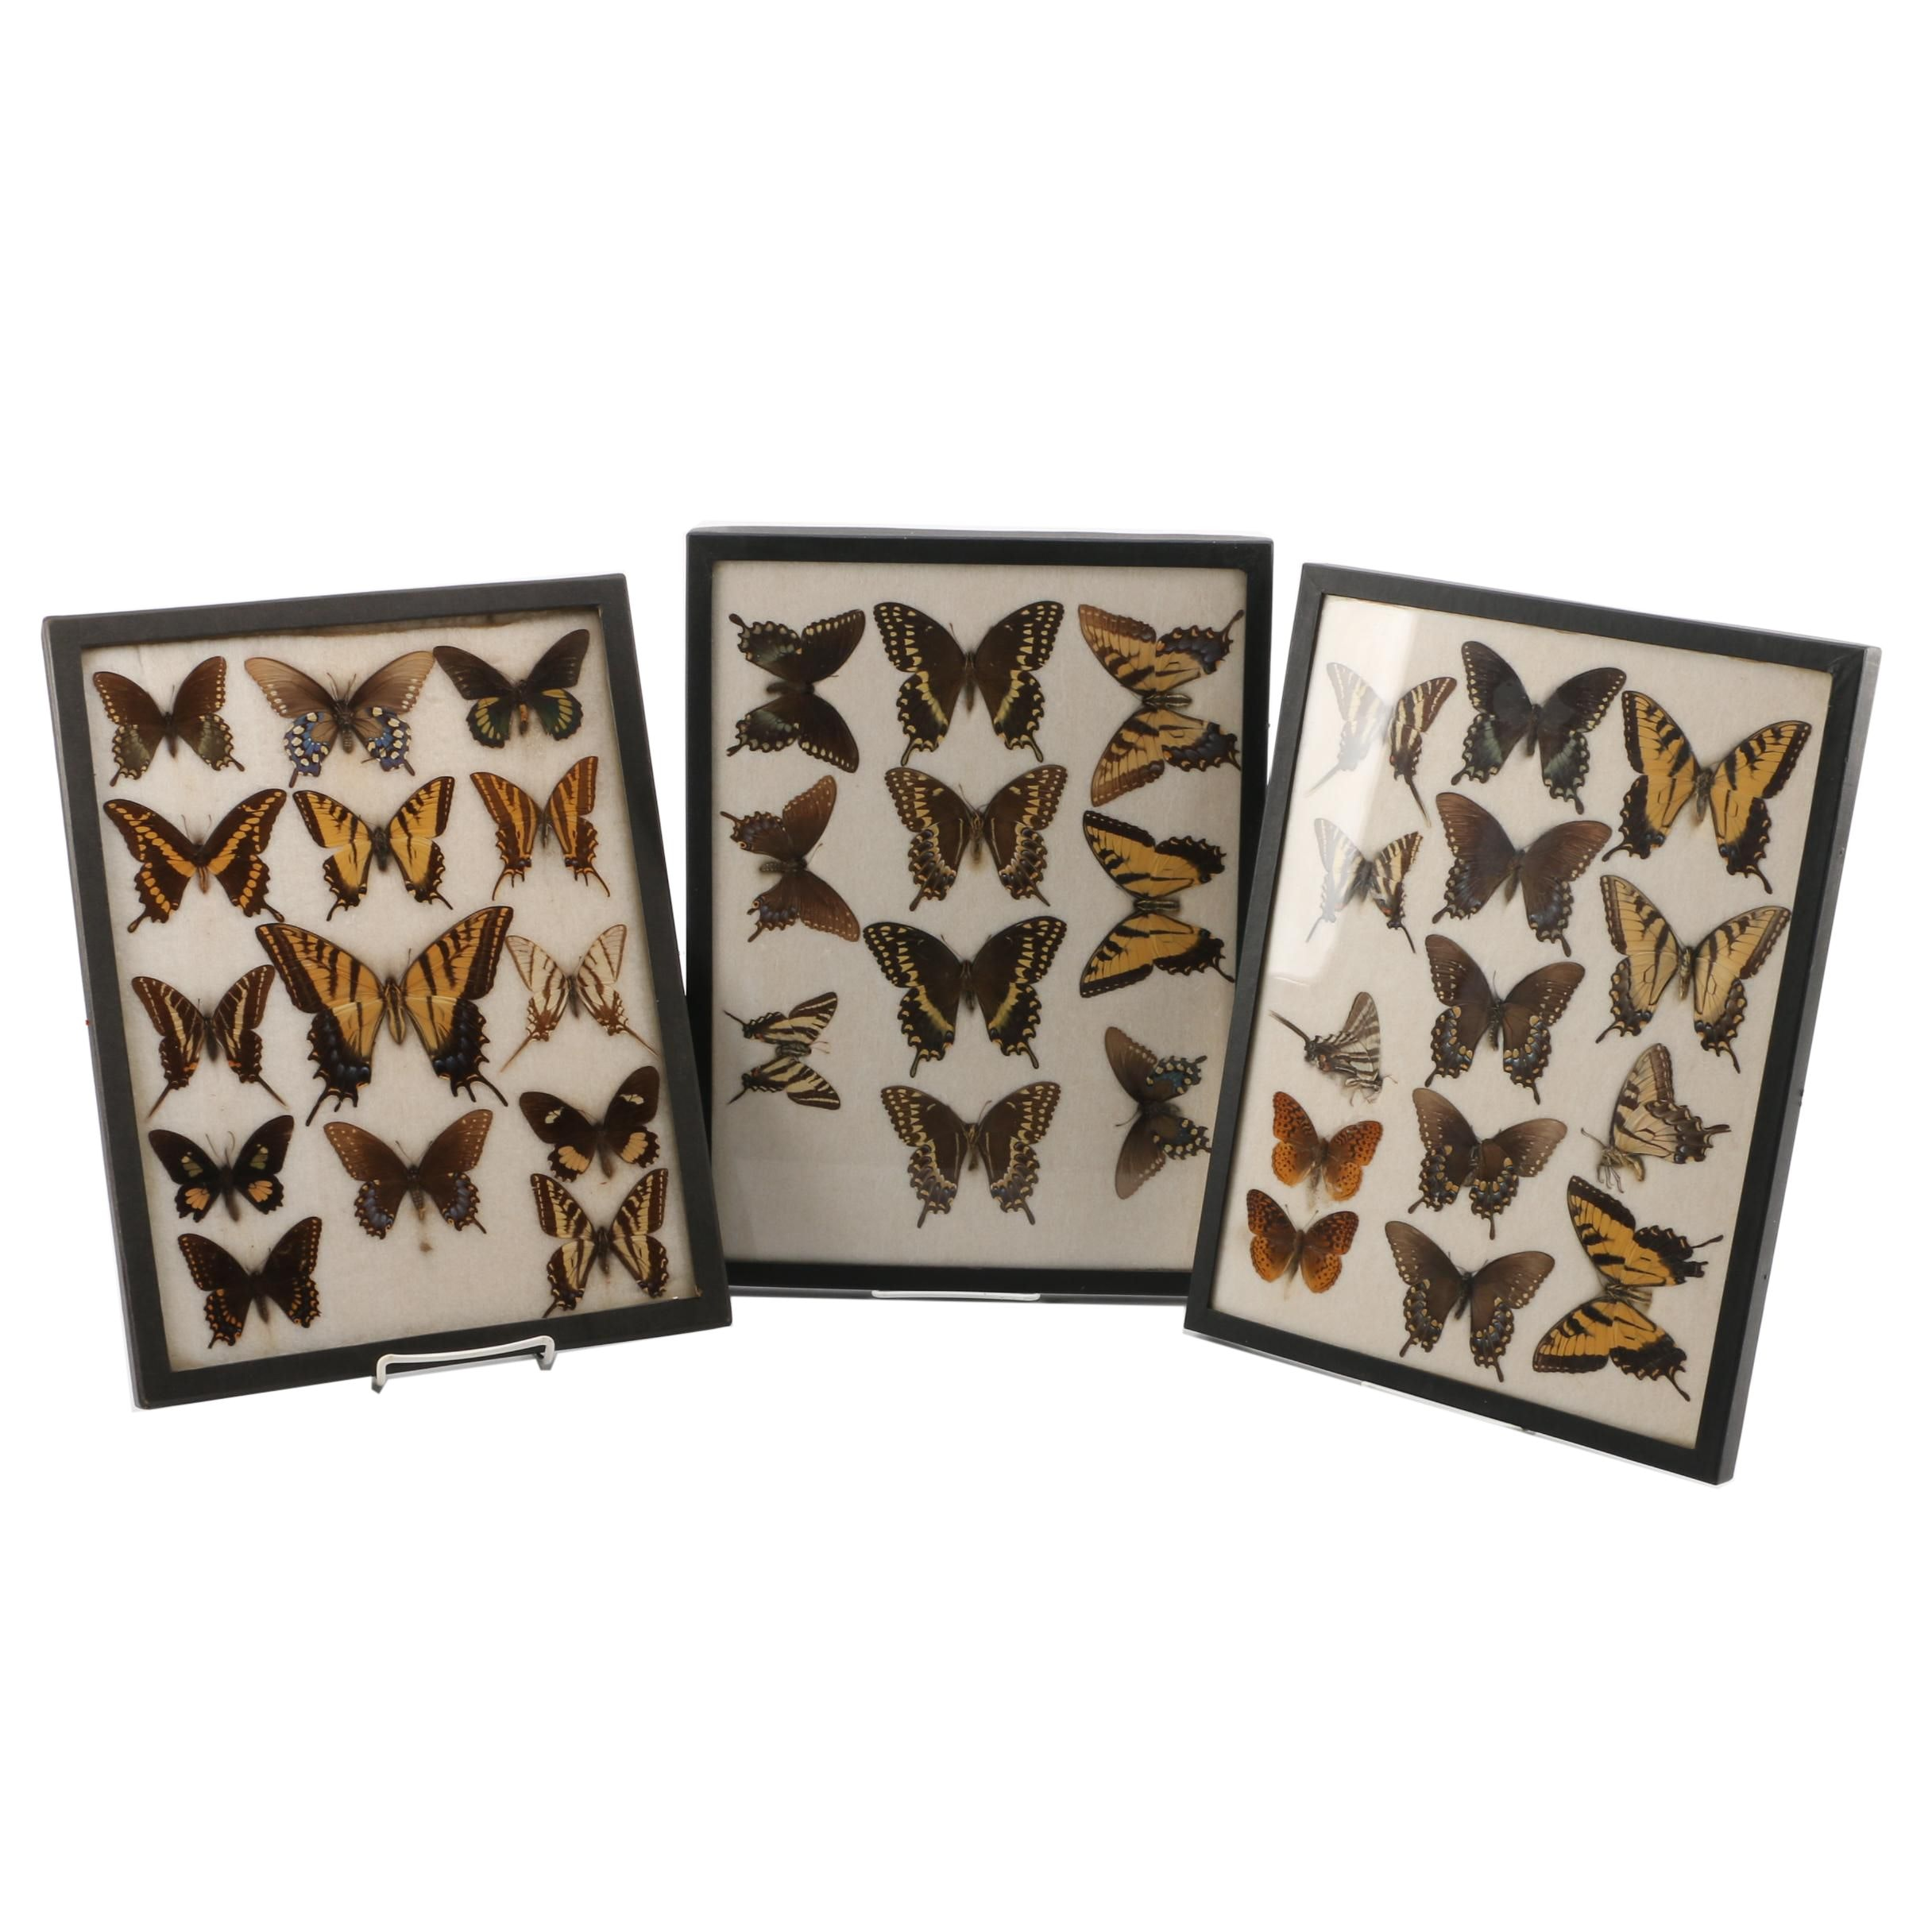 Framed Preserved Butterfly Collection